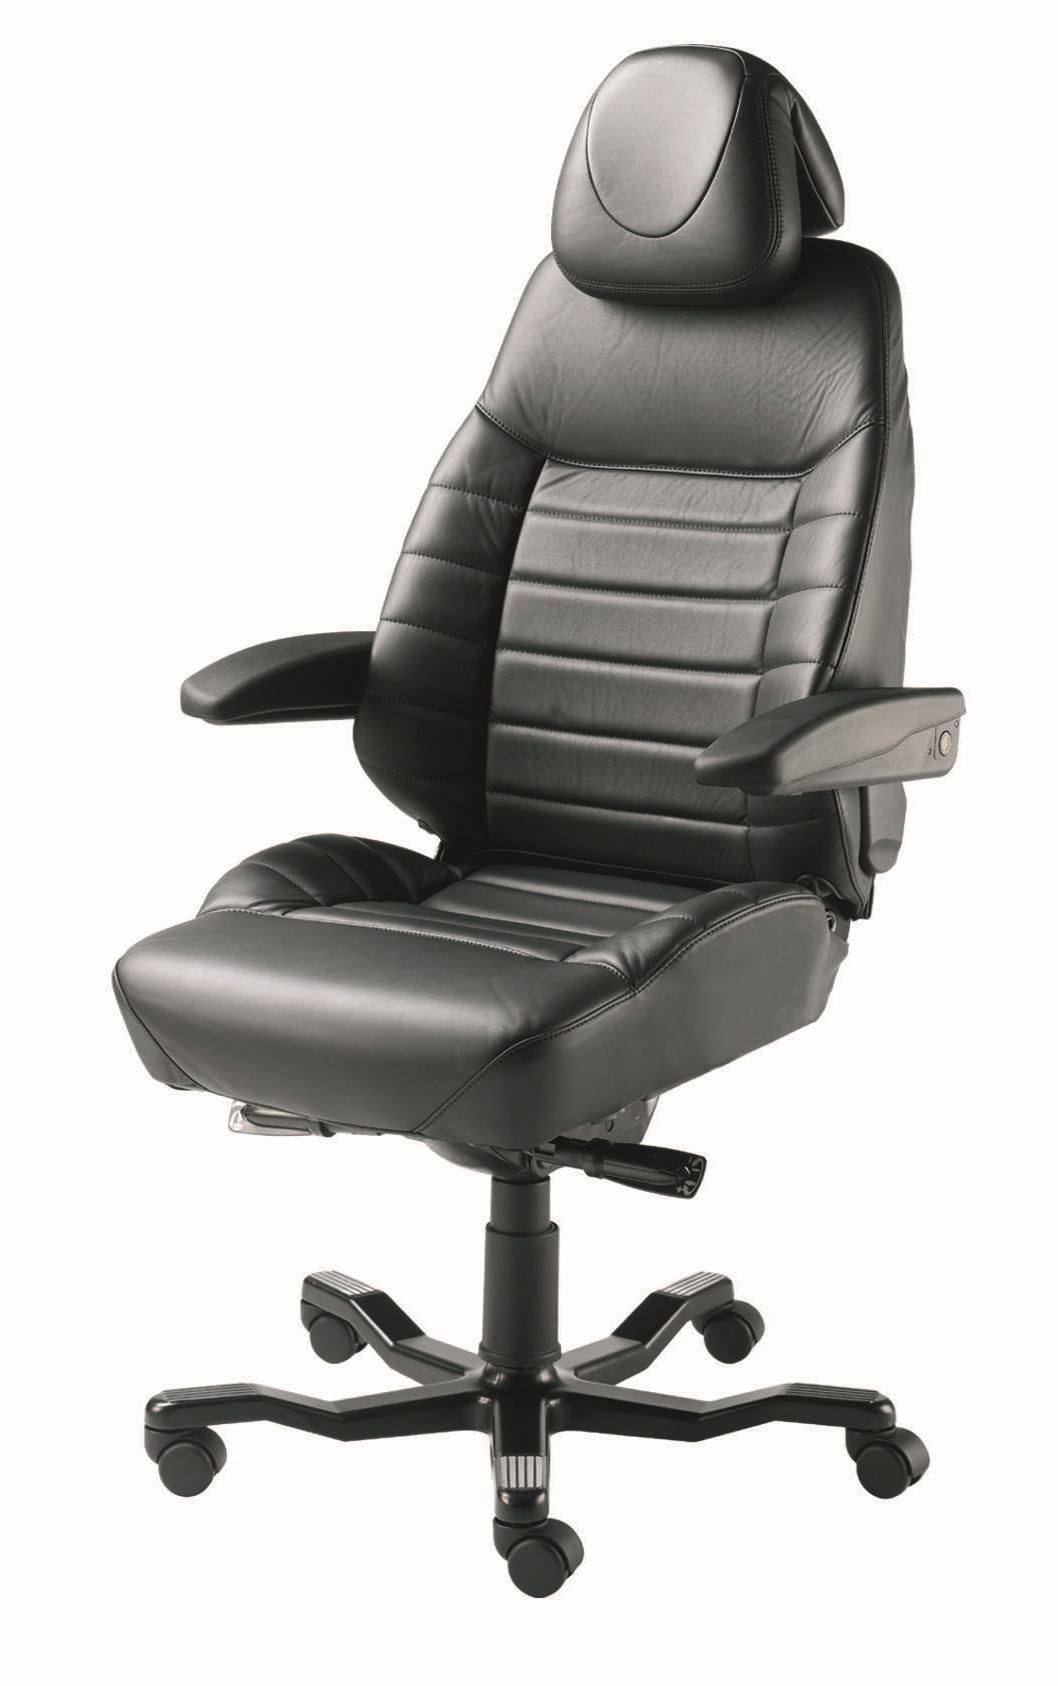 Capital Seating And Vision Gt Seating Vision And